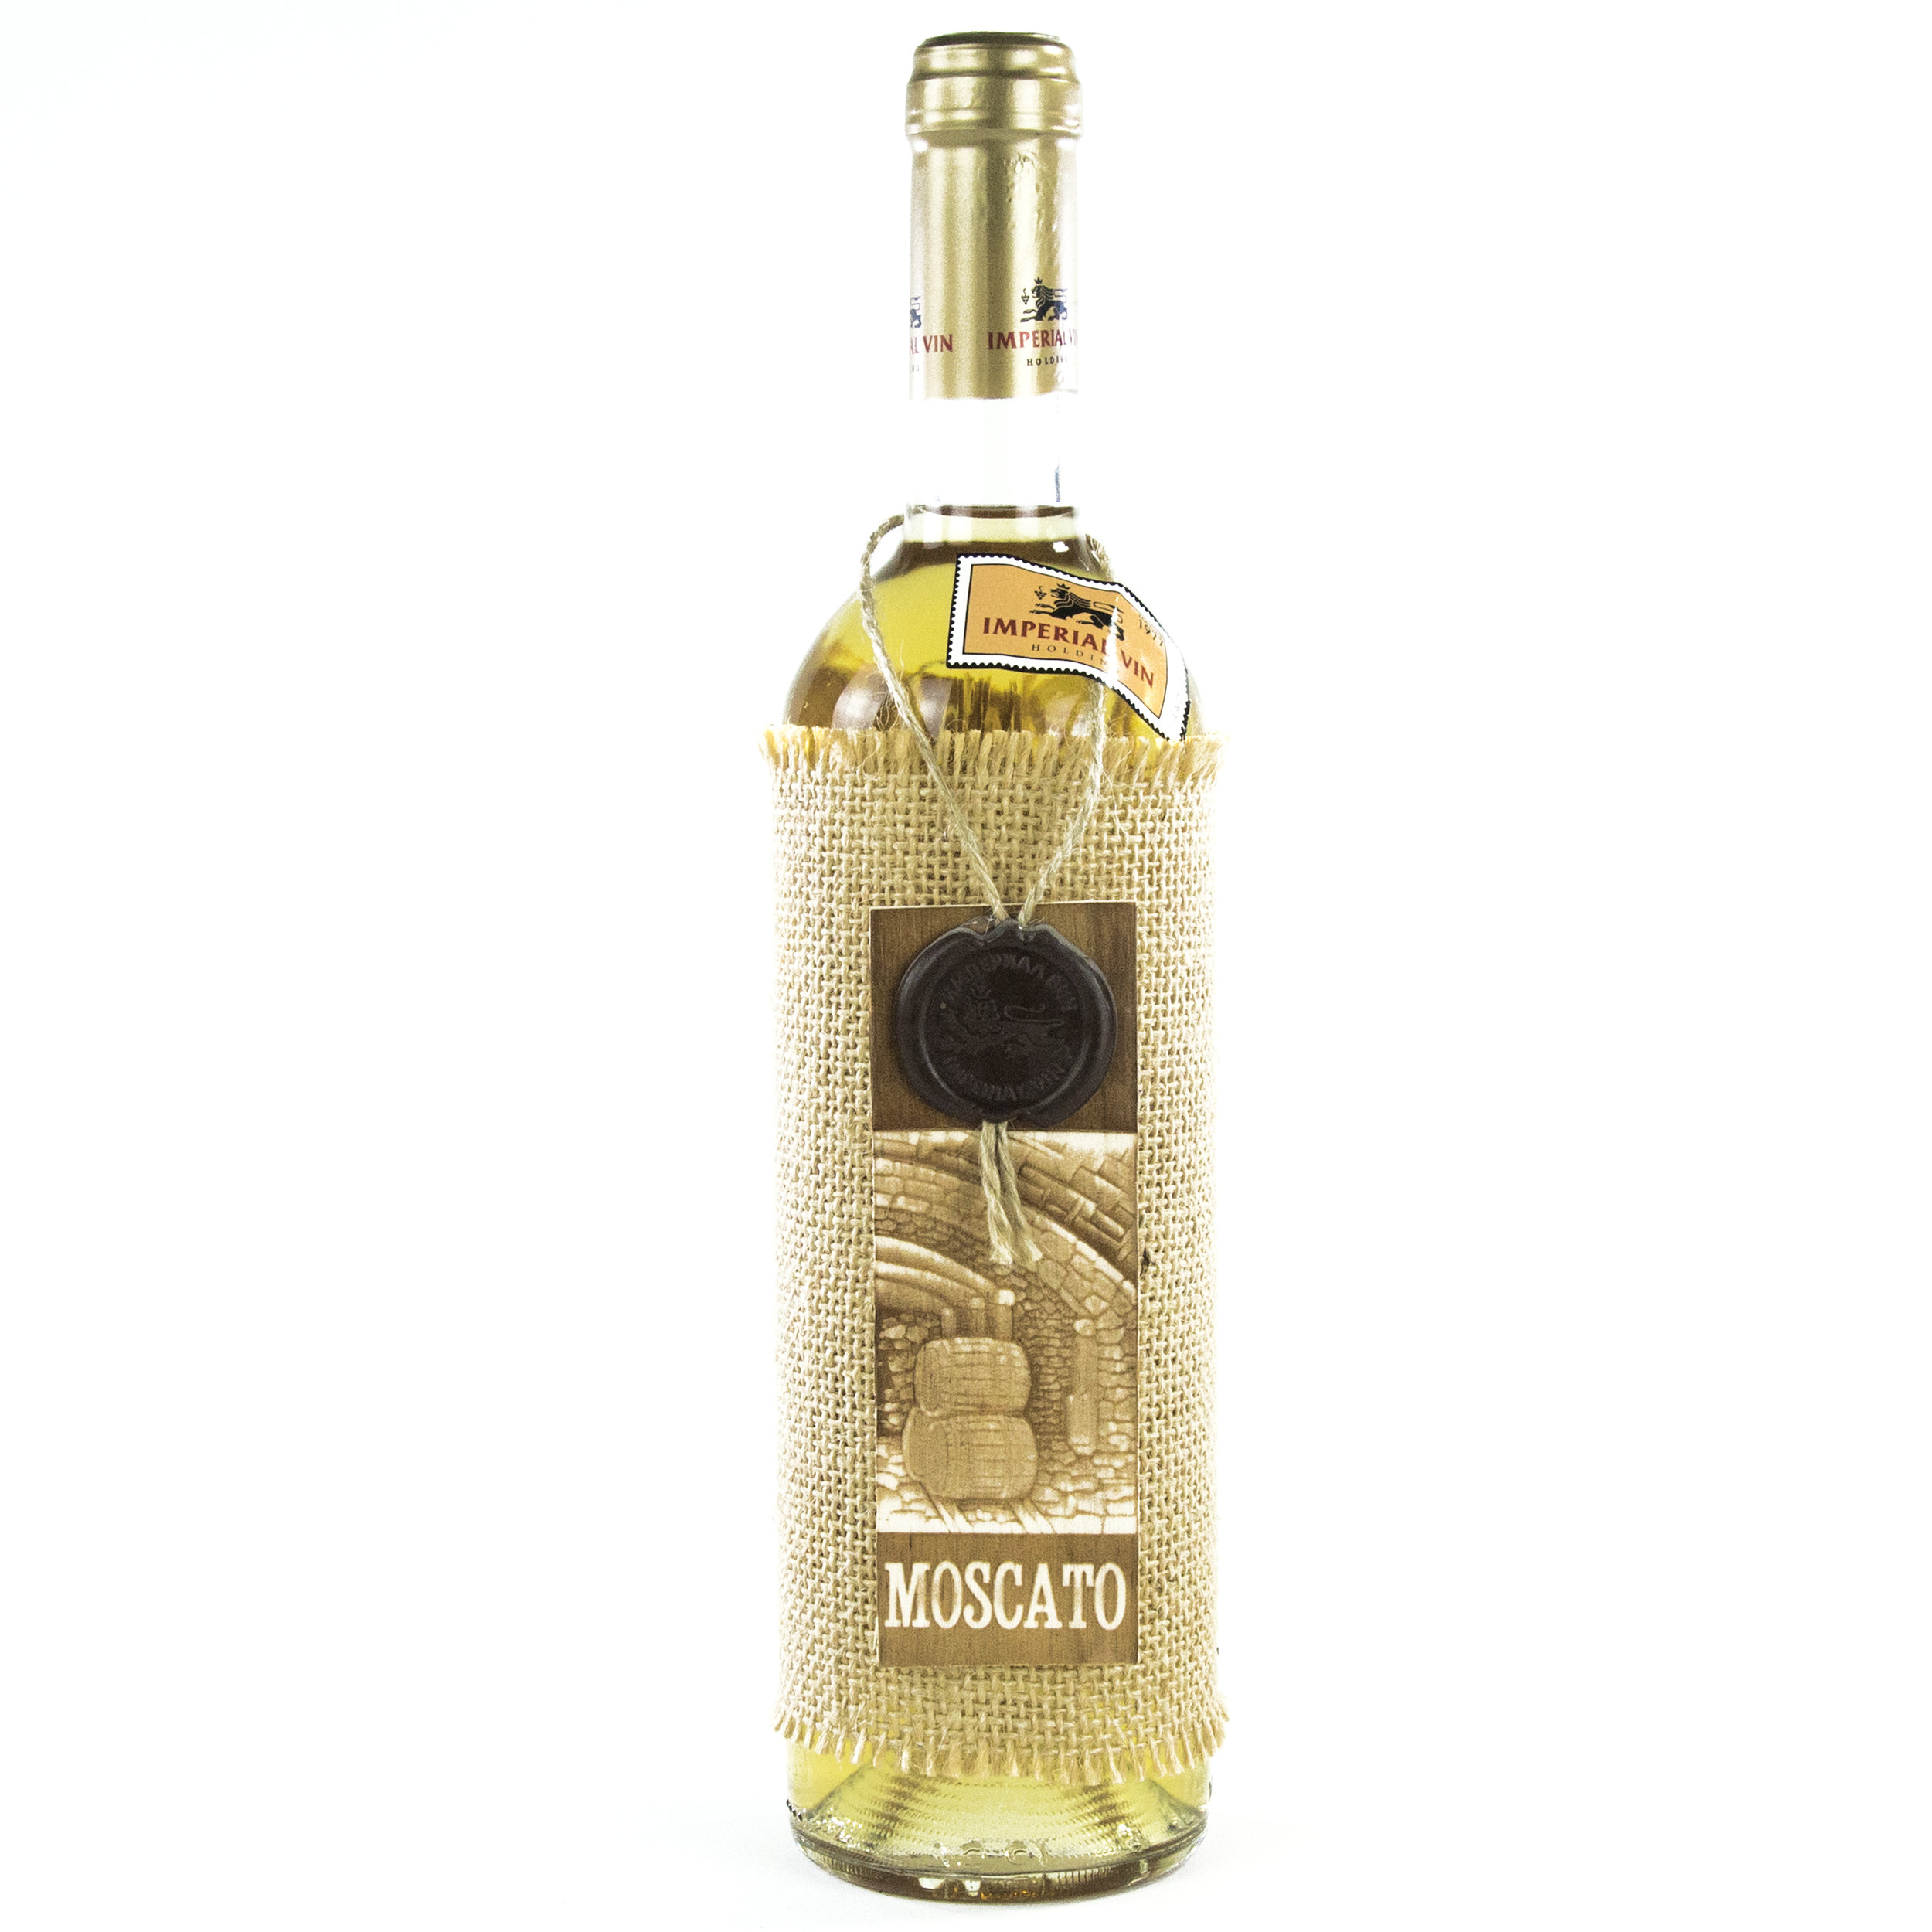 Imperial Vin Moscato